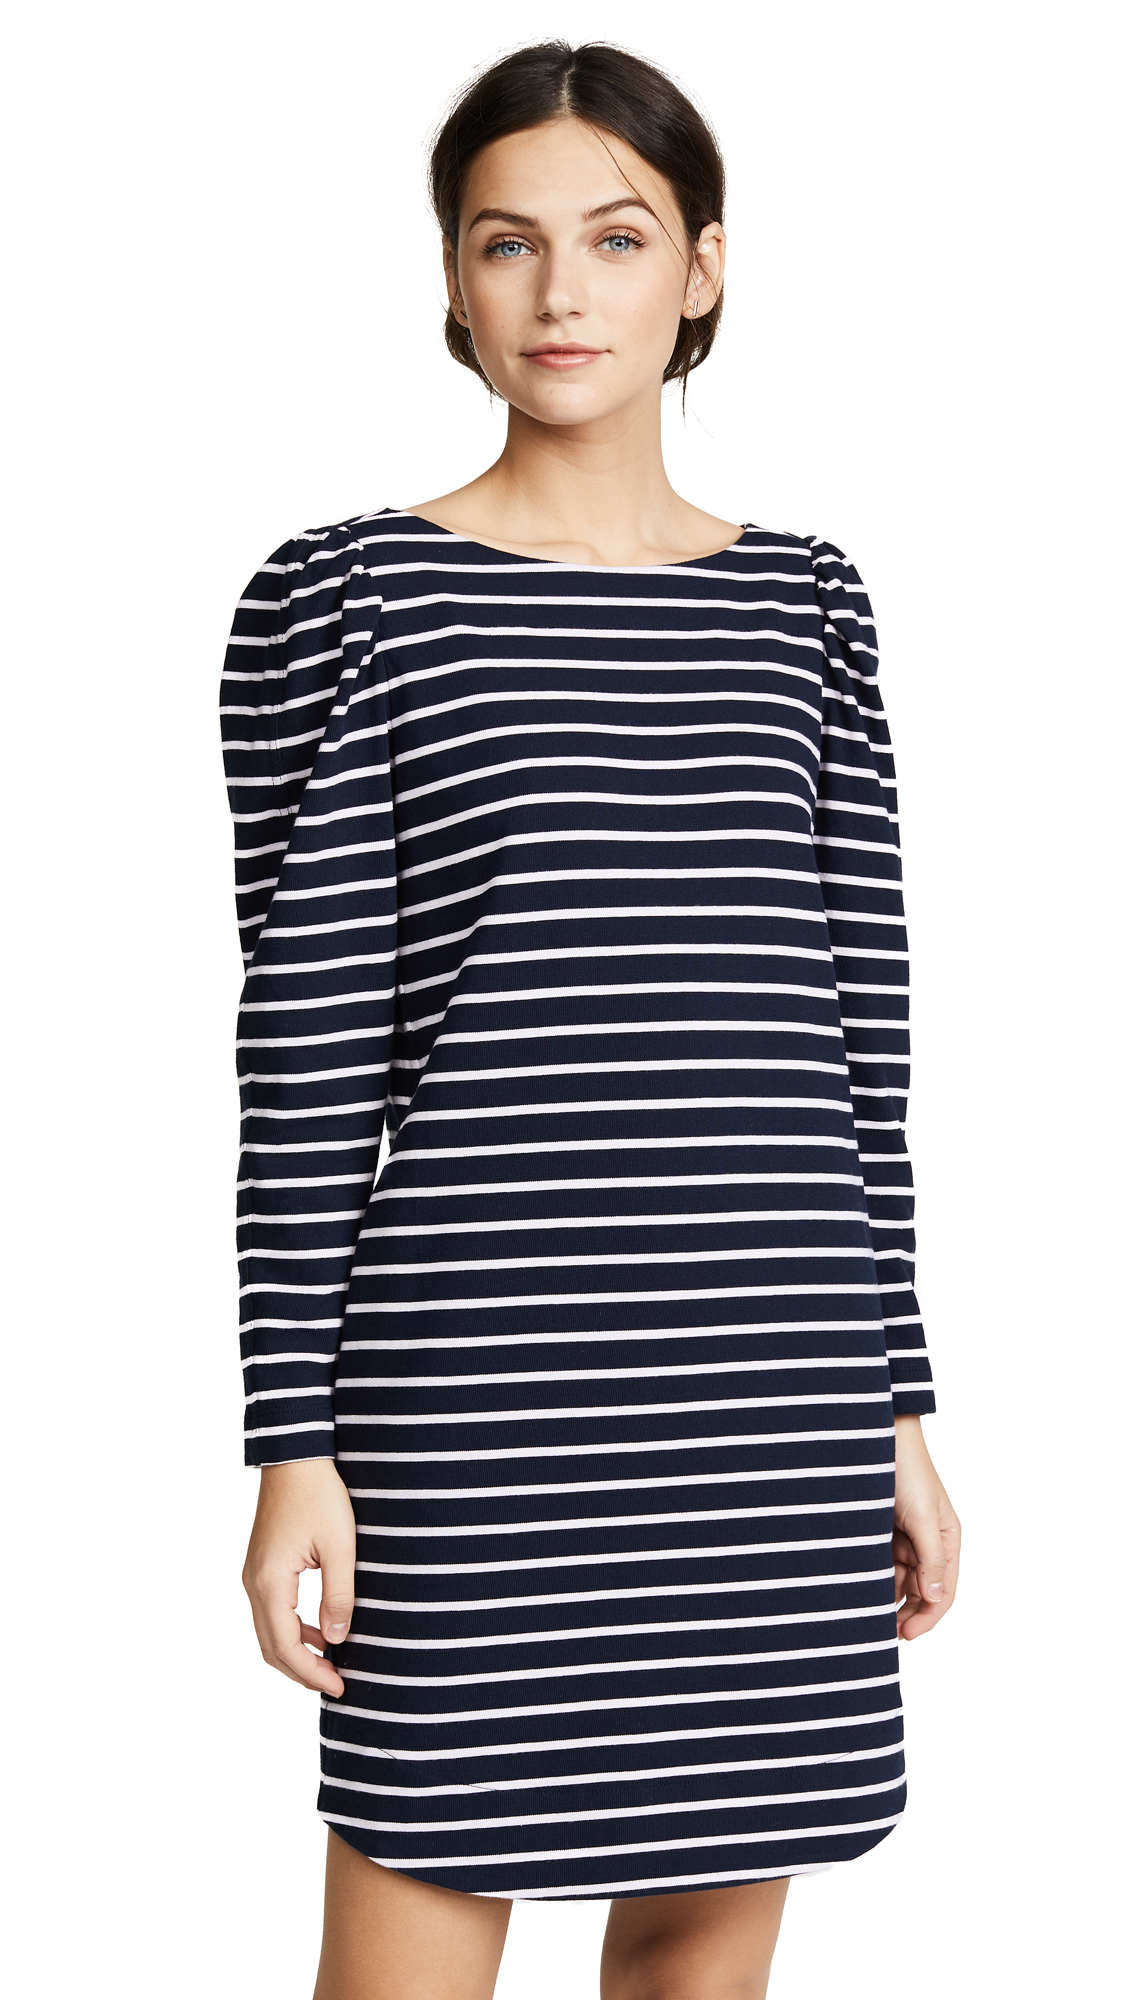 La Vie Rebecca Taylor Long Sleeve Yard Dyed Dress with Stripes In Midnight Navy Combo